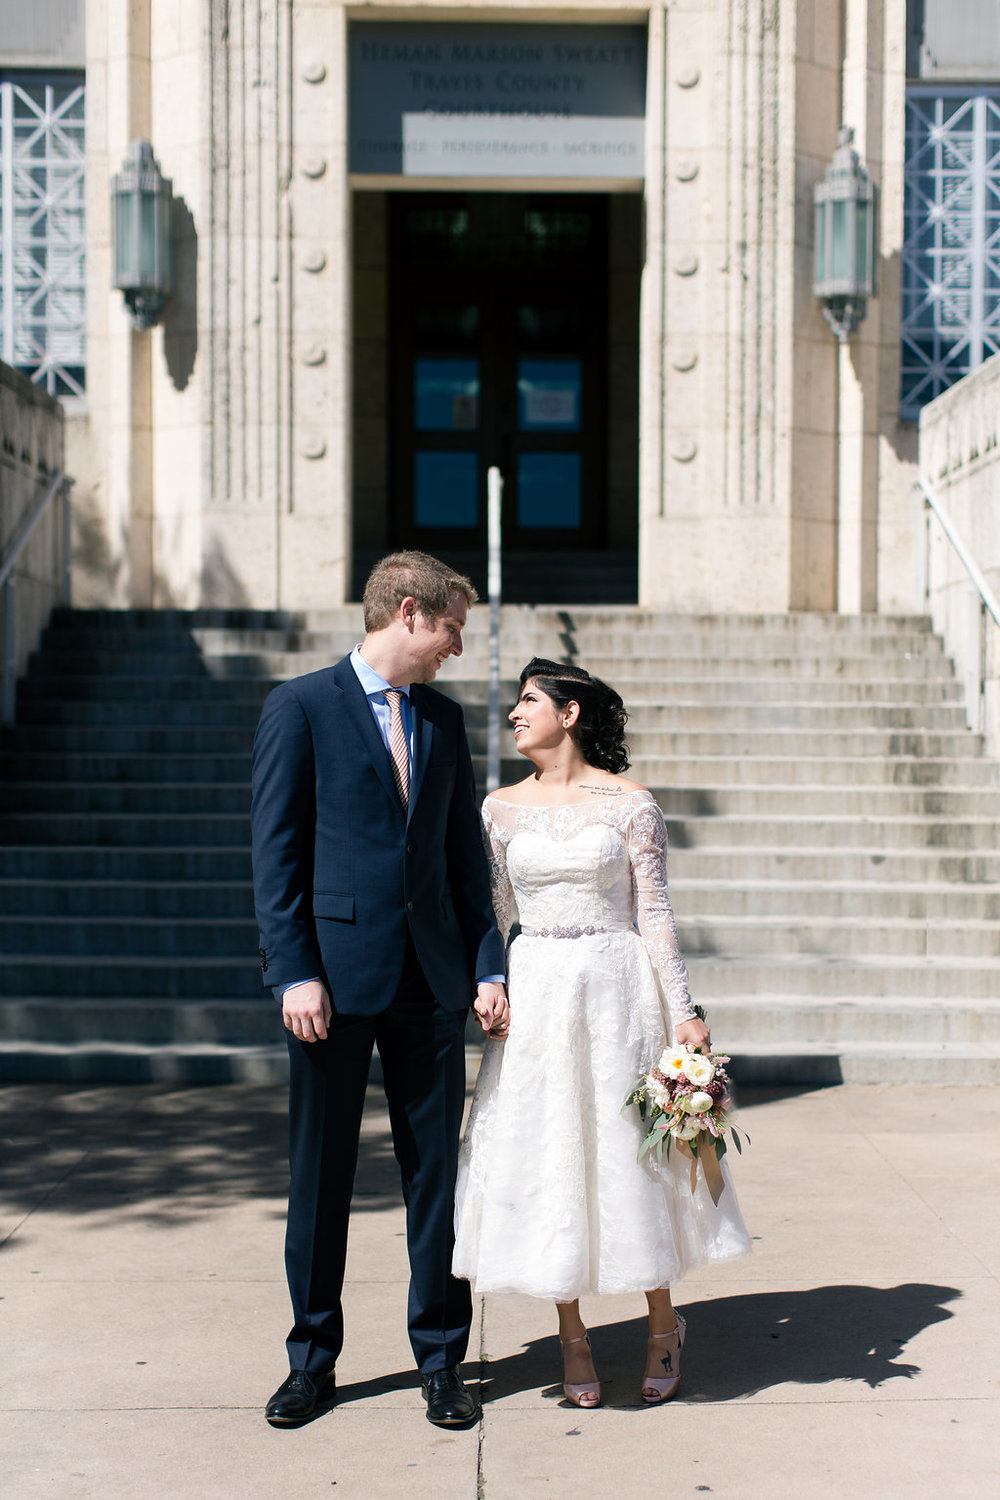 Paige-Newton-Photography-Elopement-Photographer-Austin-Courthouse-Fresas-Chicken0003.jpg